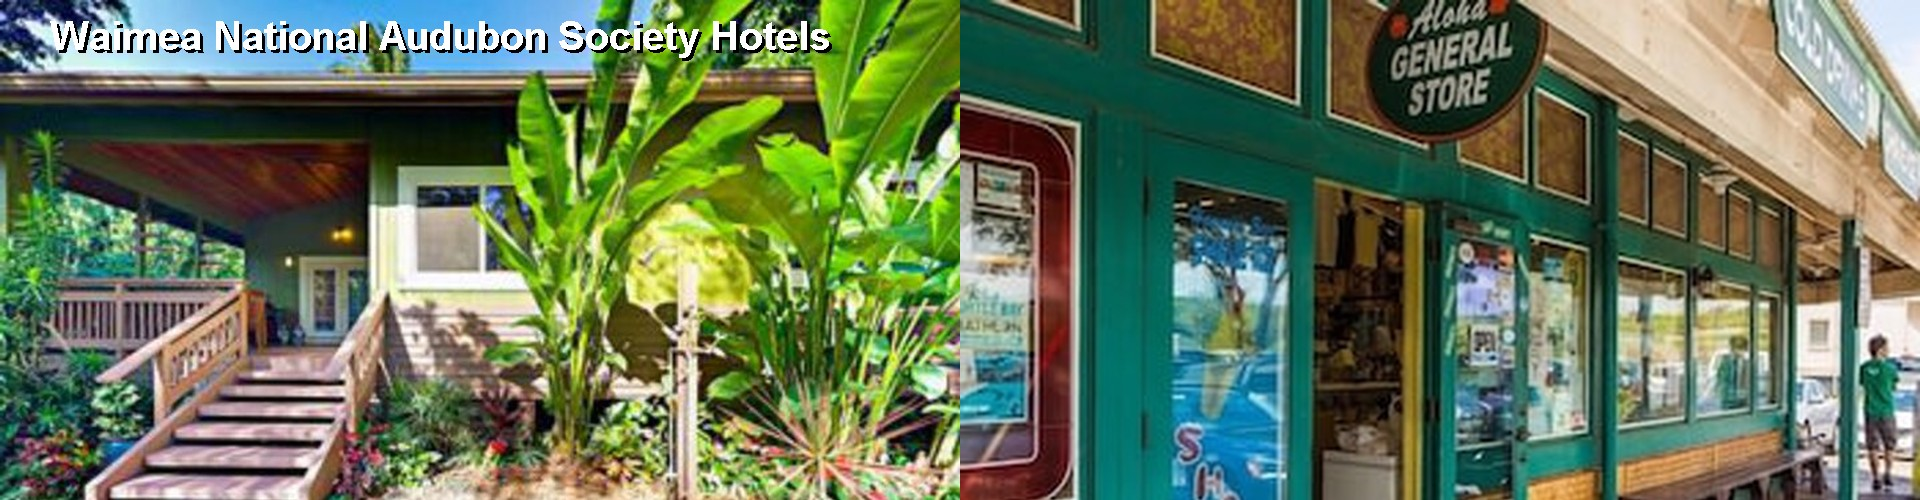 5 Best Hotels near Waimea National Audubon Society